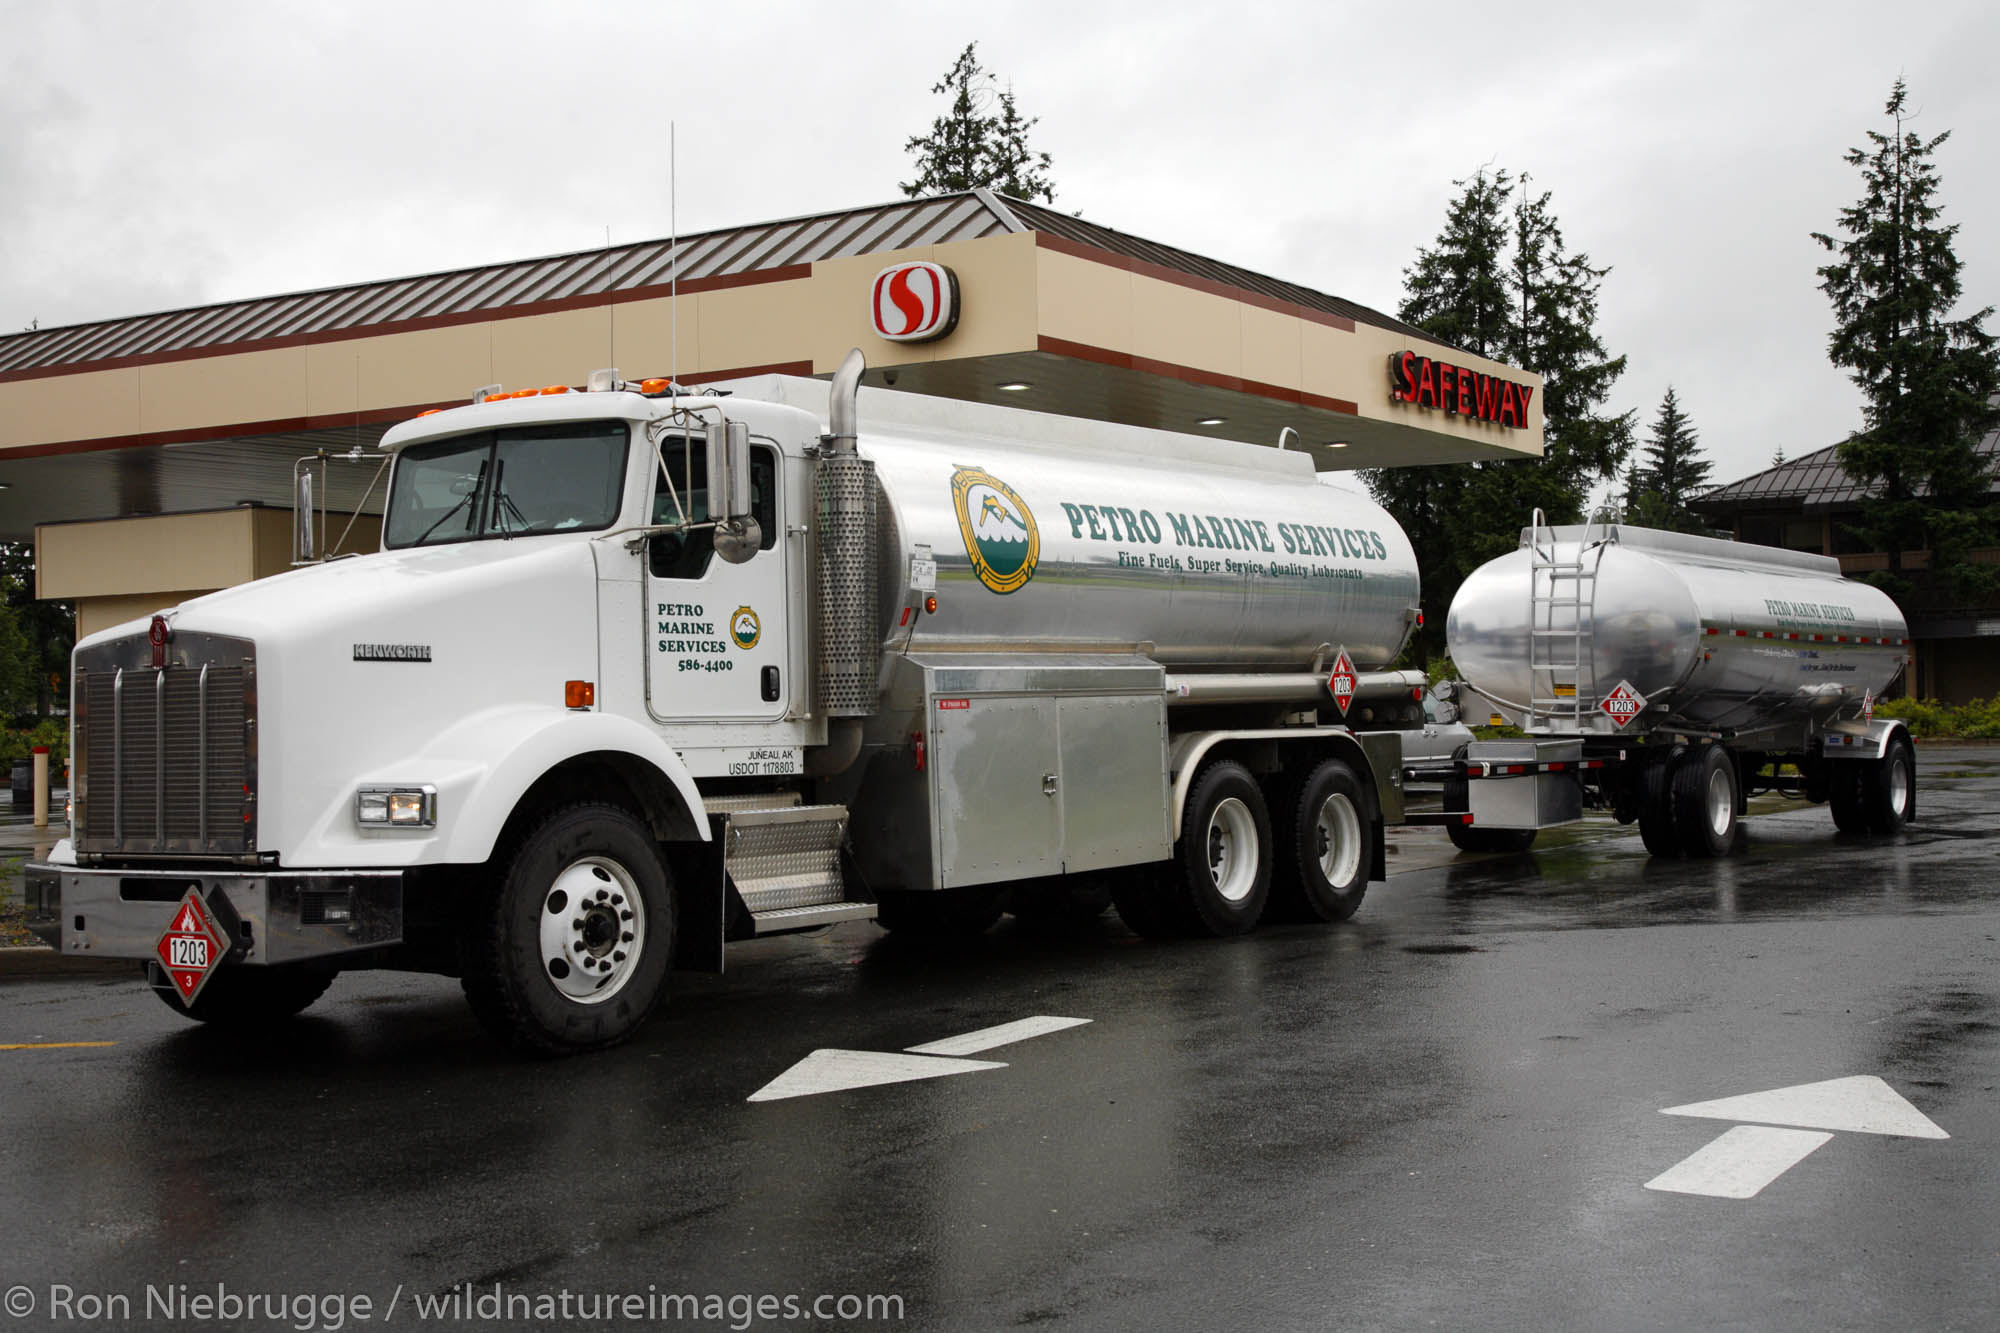 Petro Marine Services truck delivering gas to the Safeway service station, Juneau, Alaska.